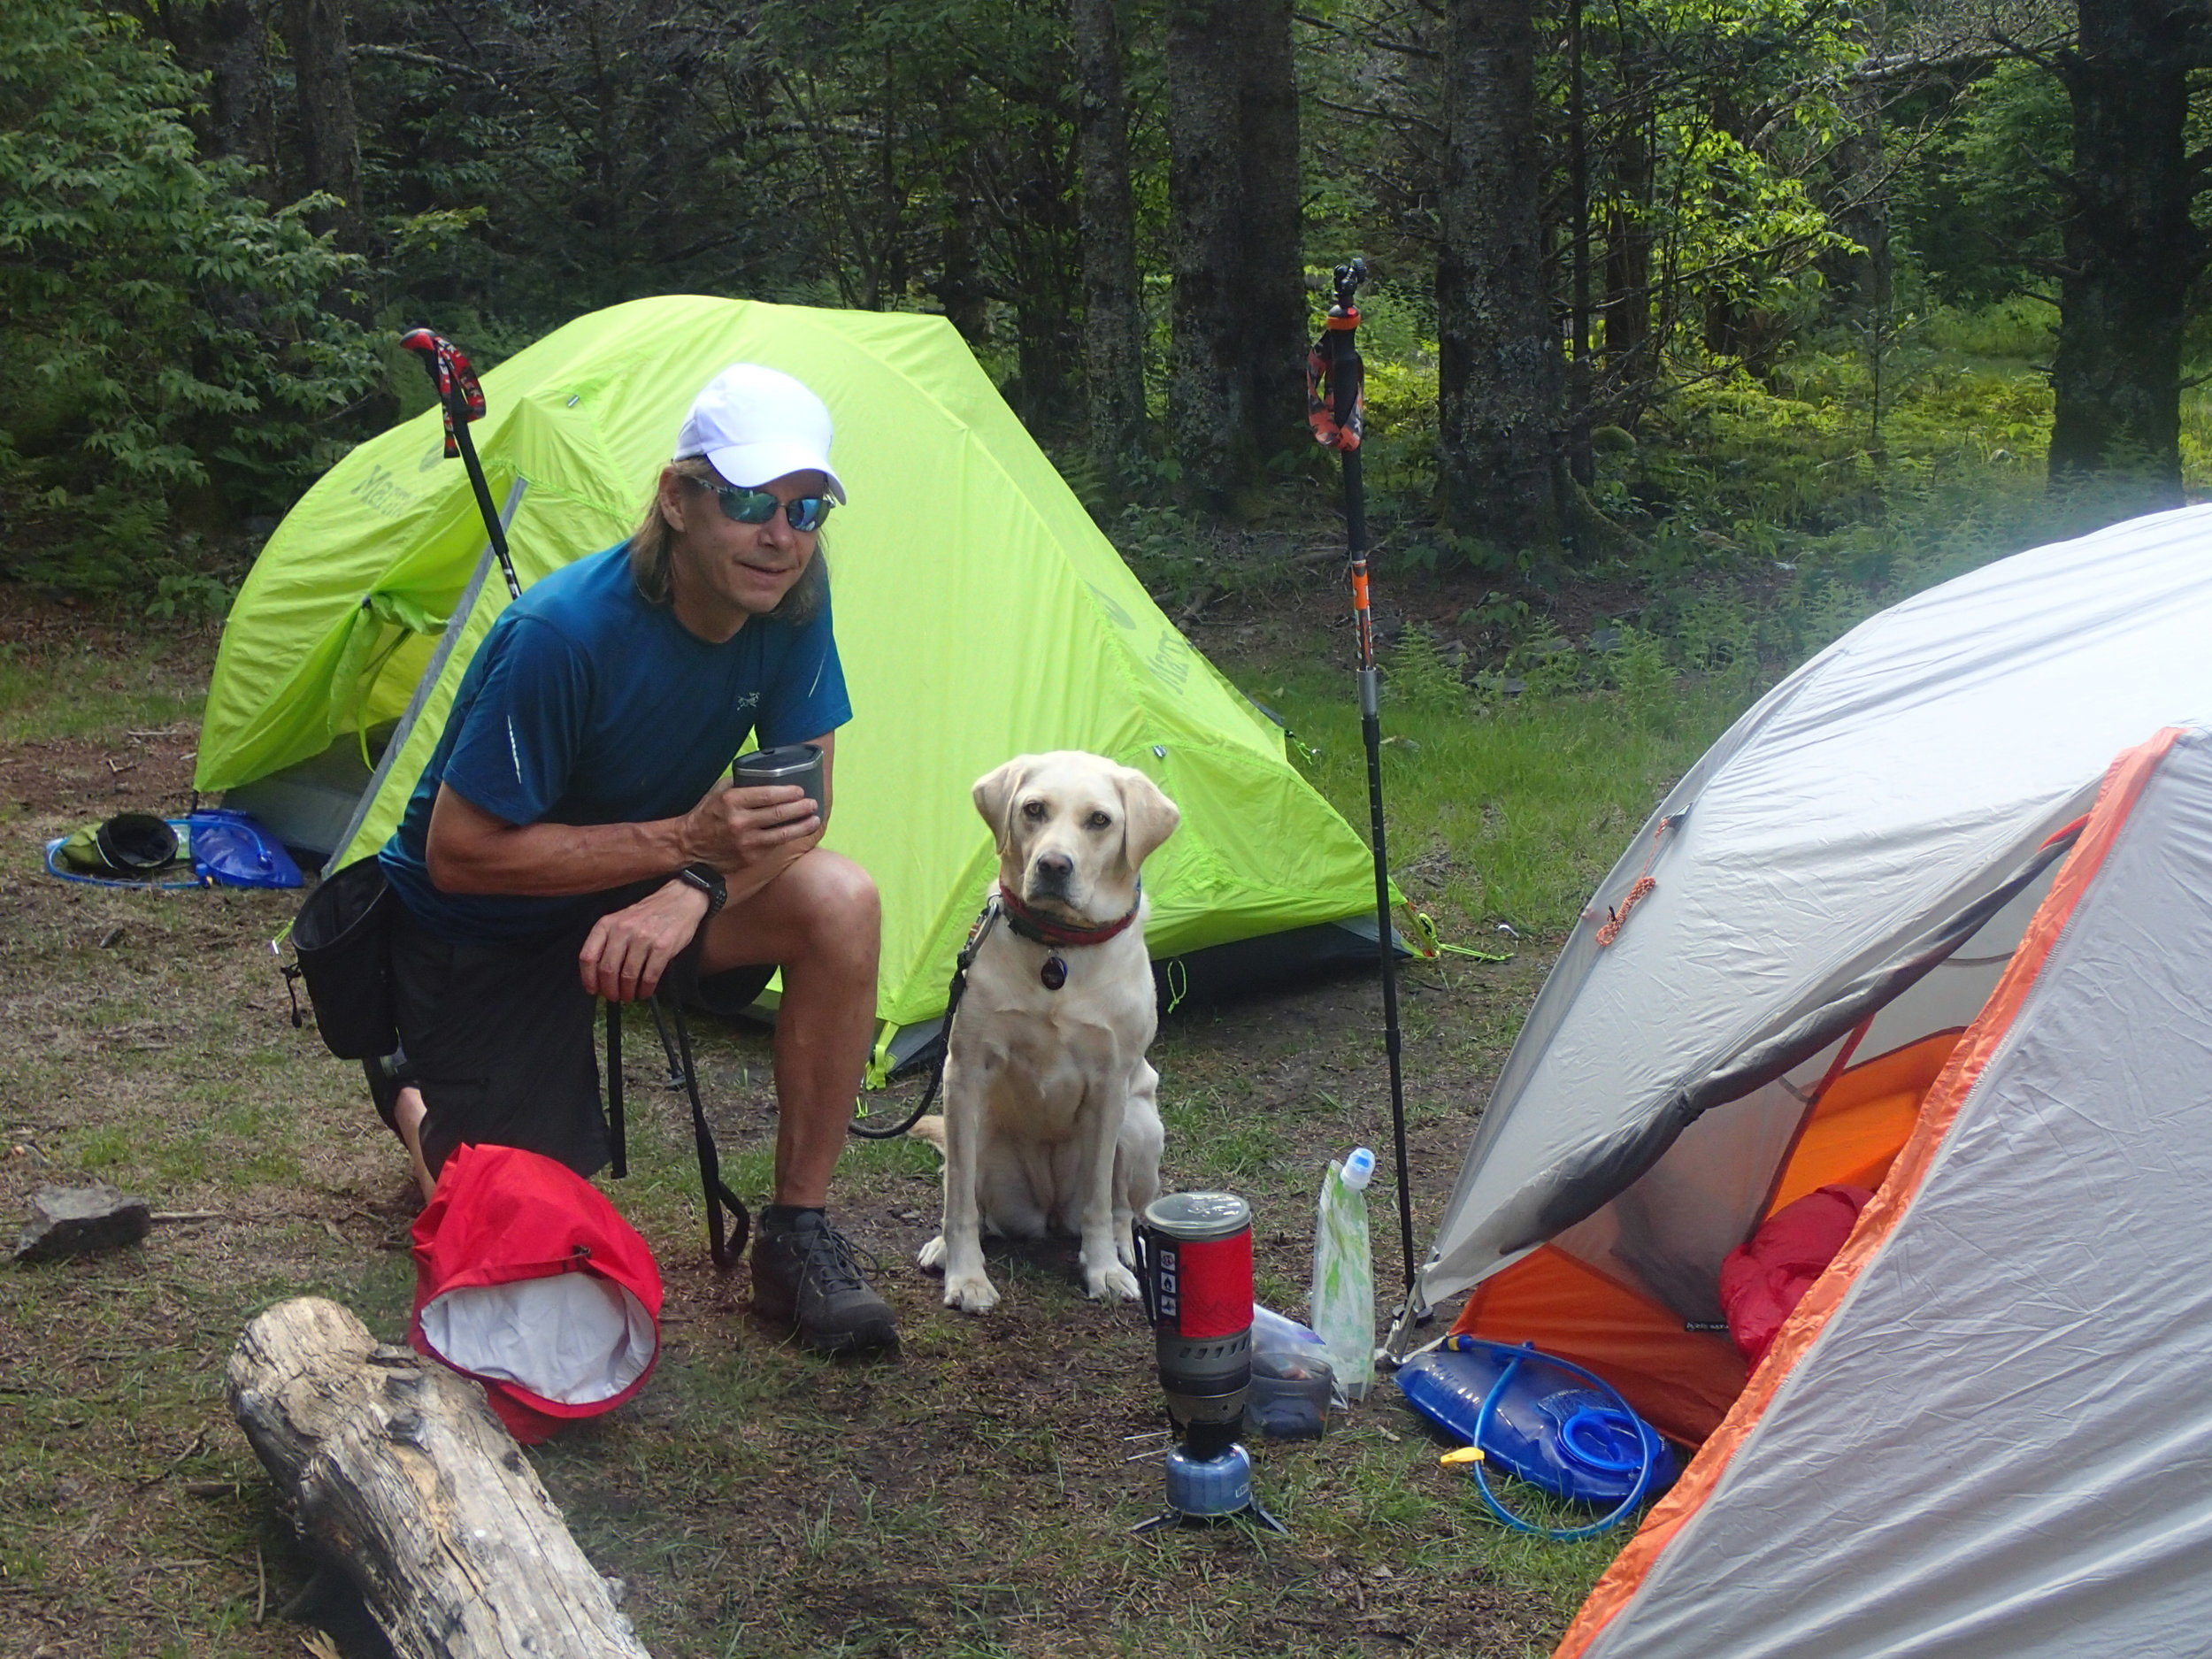 Lulu learns to hike and camp at Grayson Highlands on the Appalachian Trail.